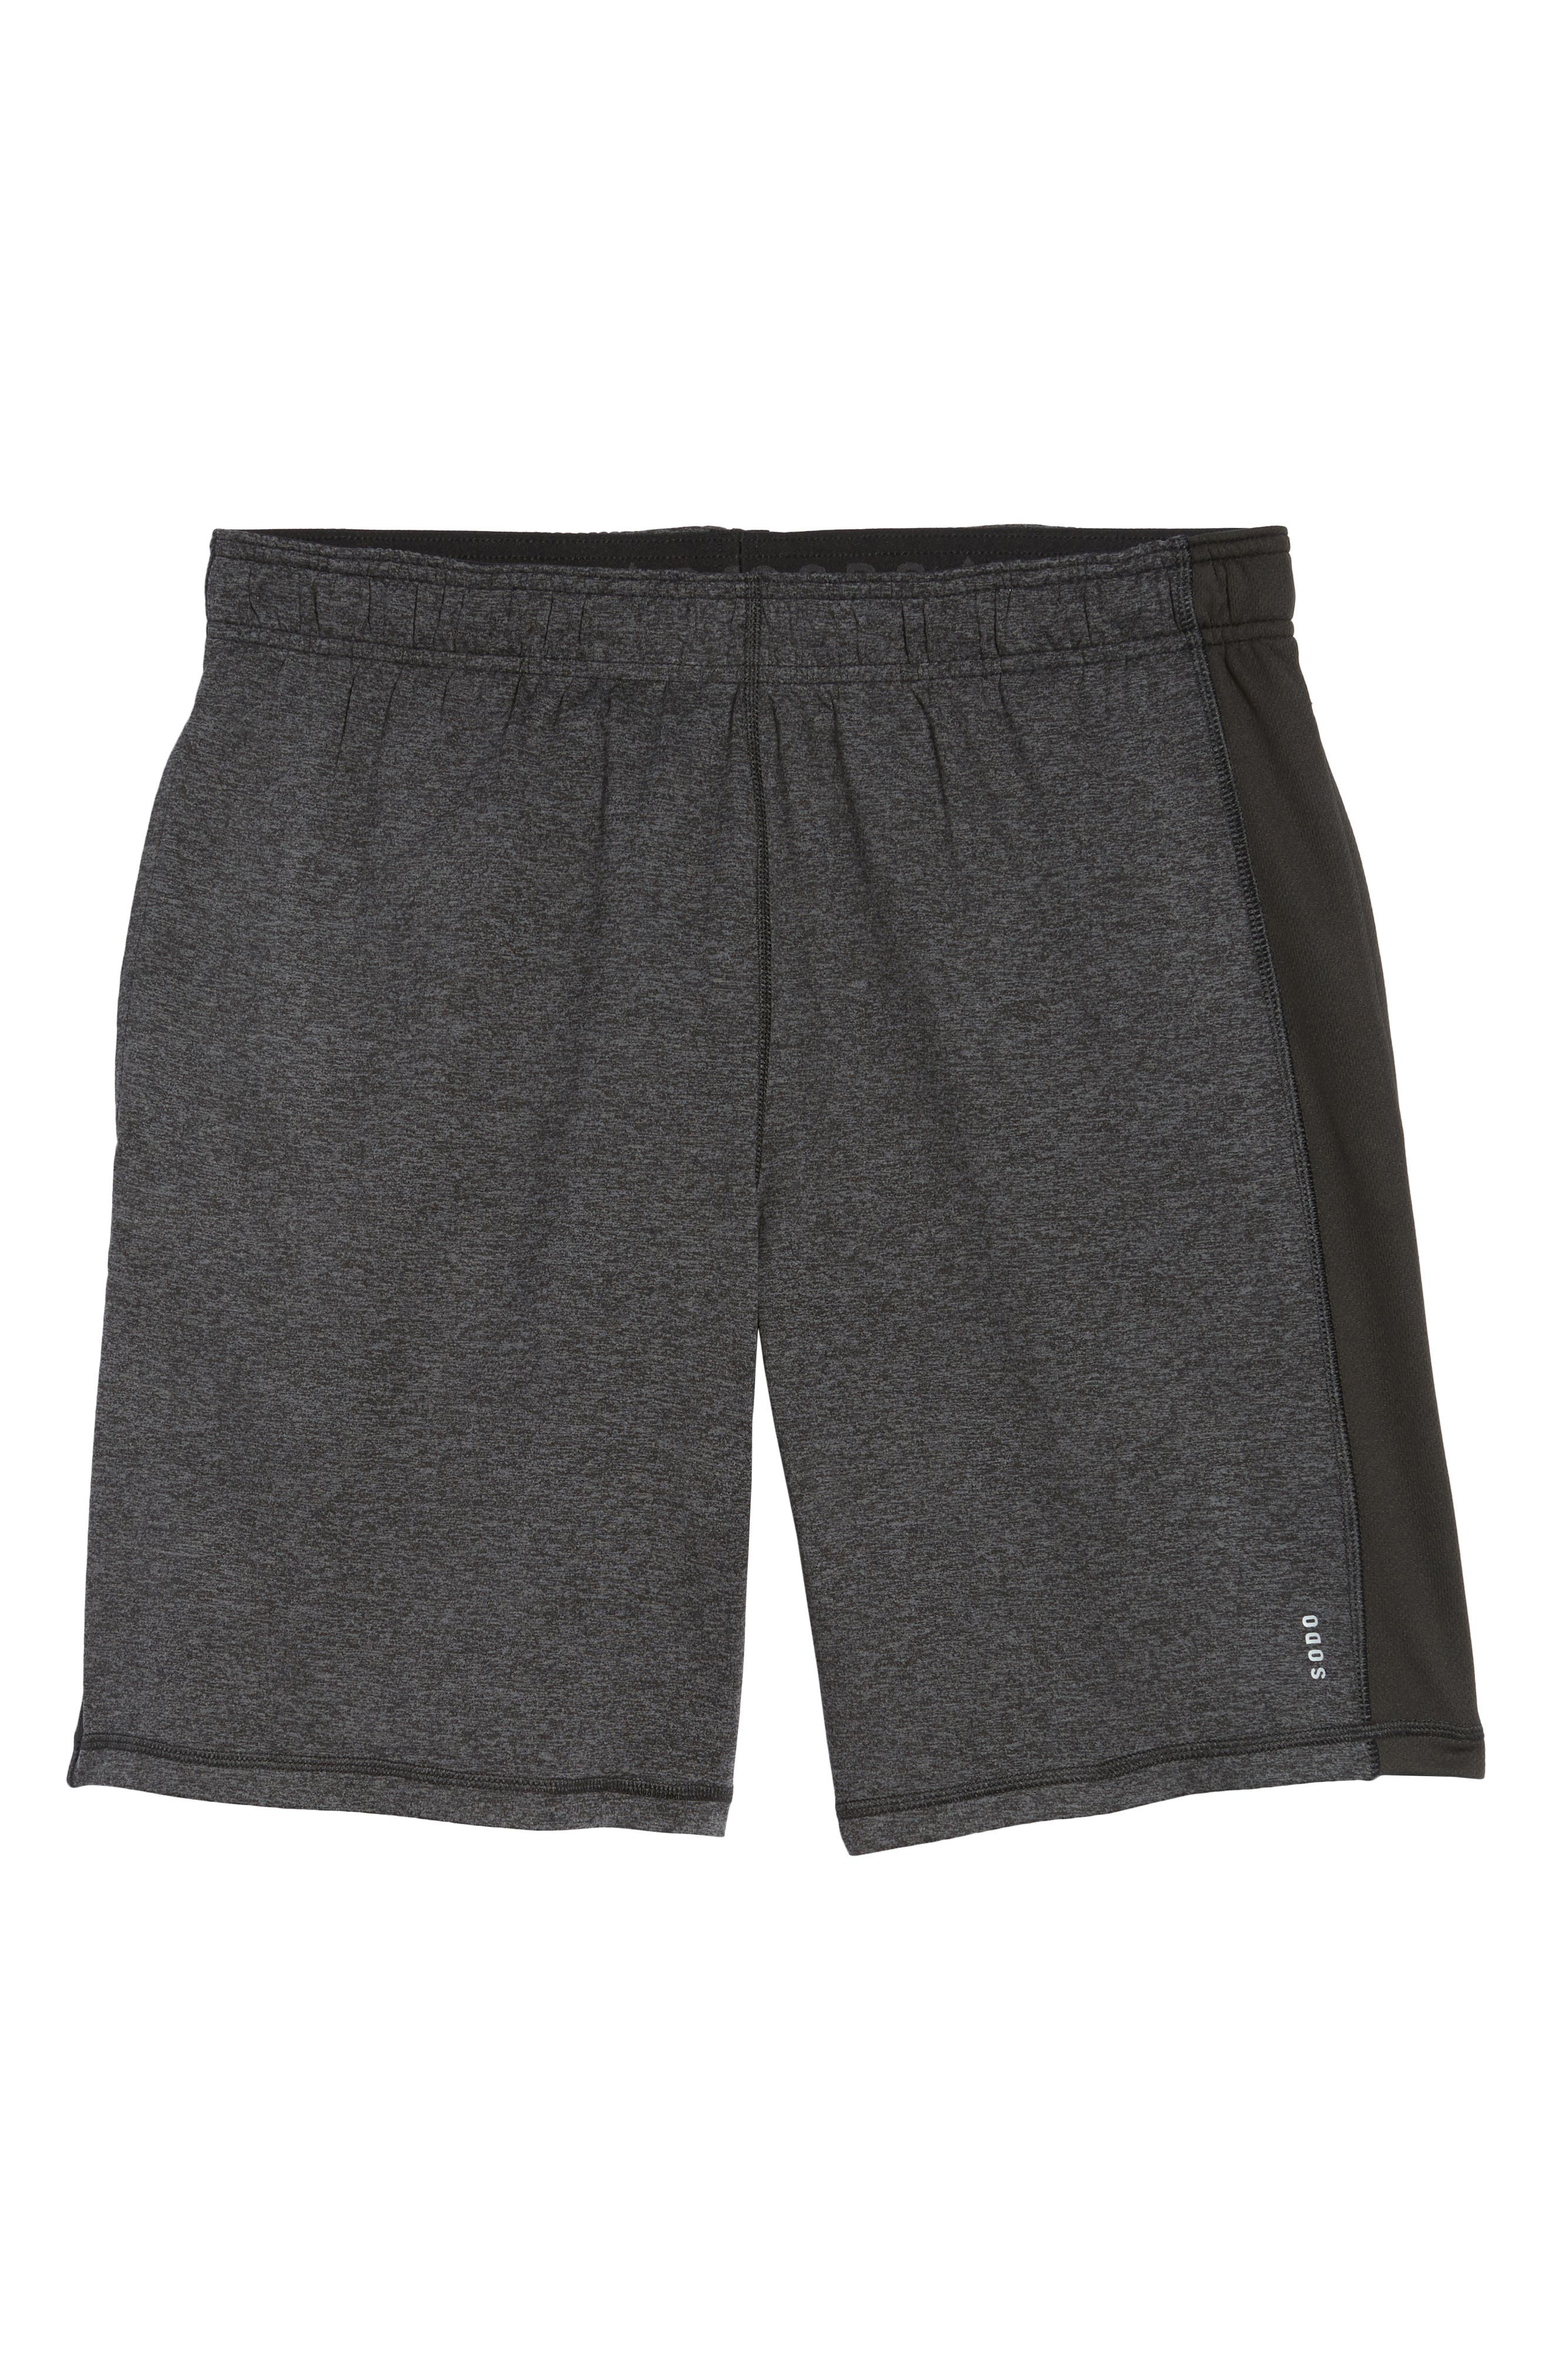 'Go To' Moisture Wicking Stretch Shorts,                             Alternate thumbnail 6, color,                             HEATHER CHARCOAL/ BLACK